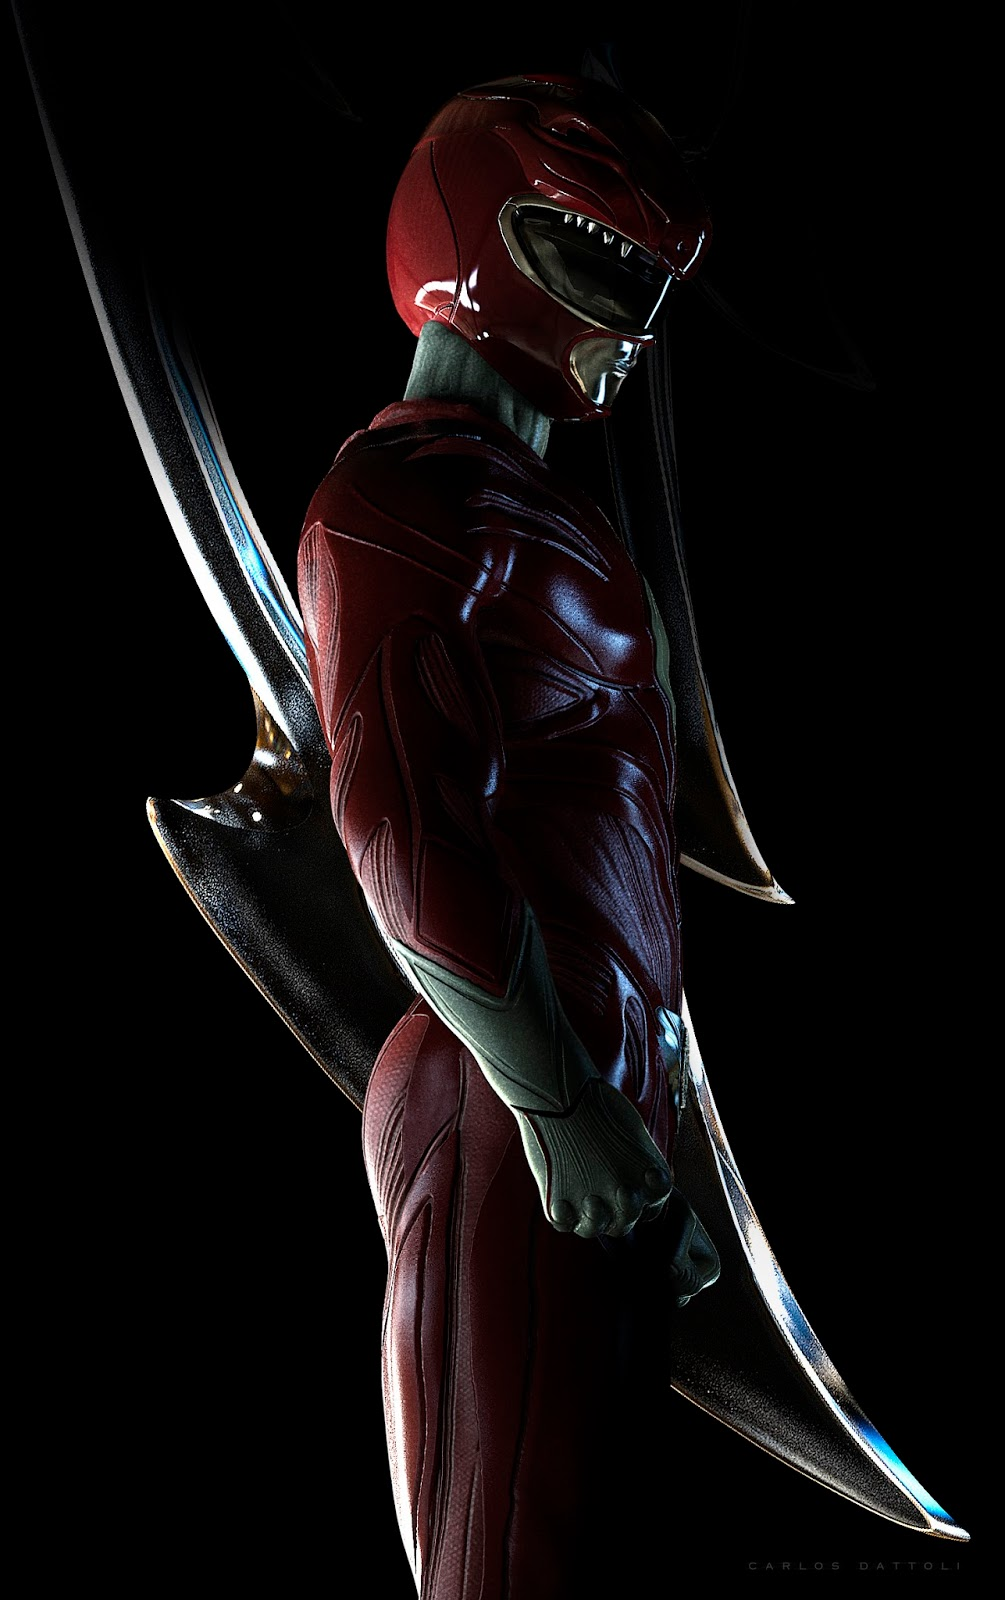 Carlos Dattoli Red Power Rangers